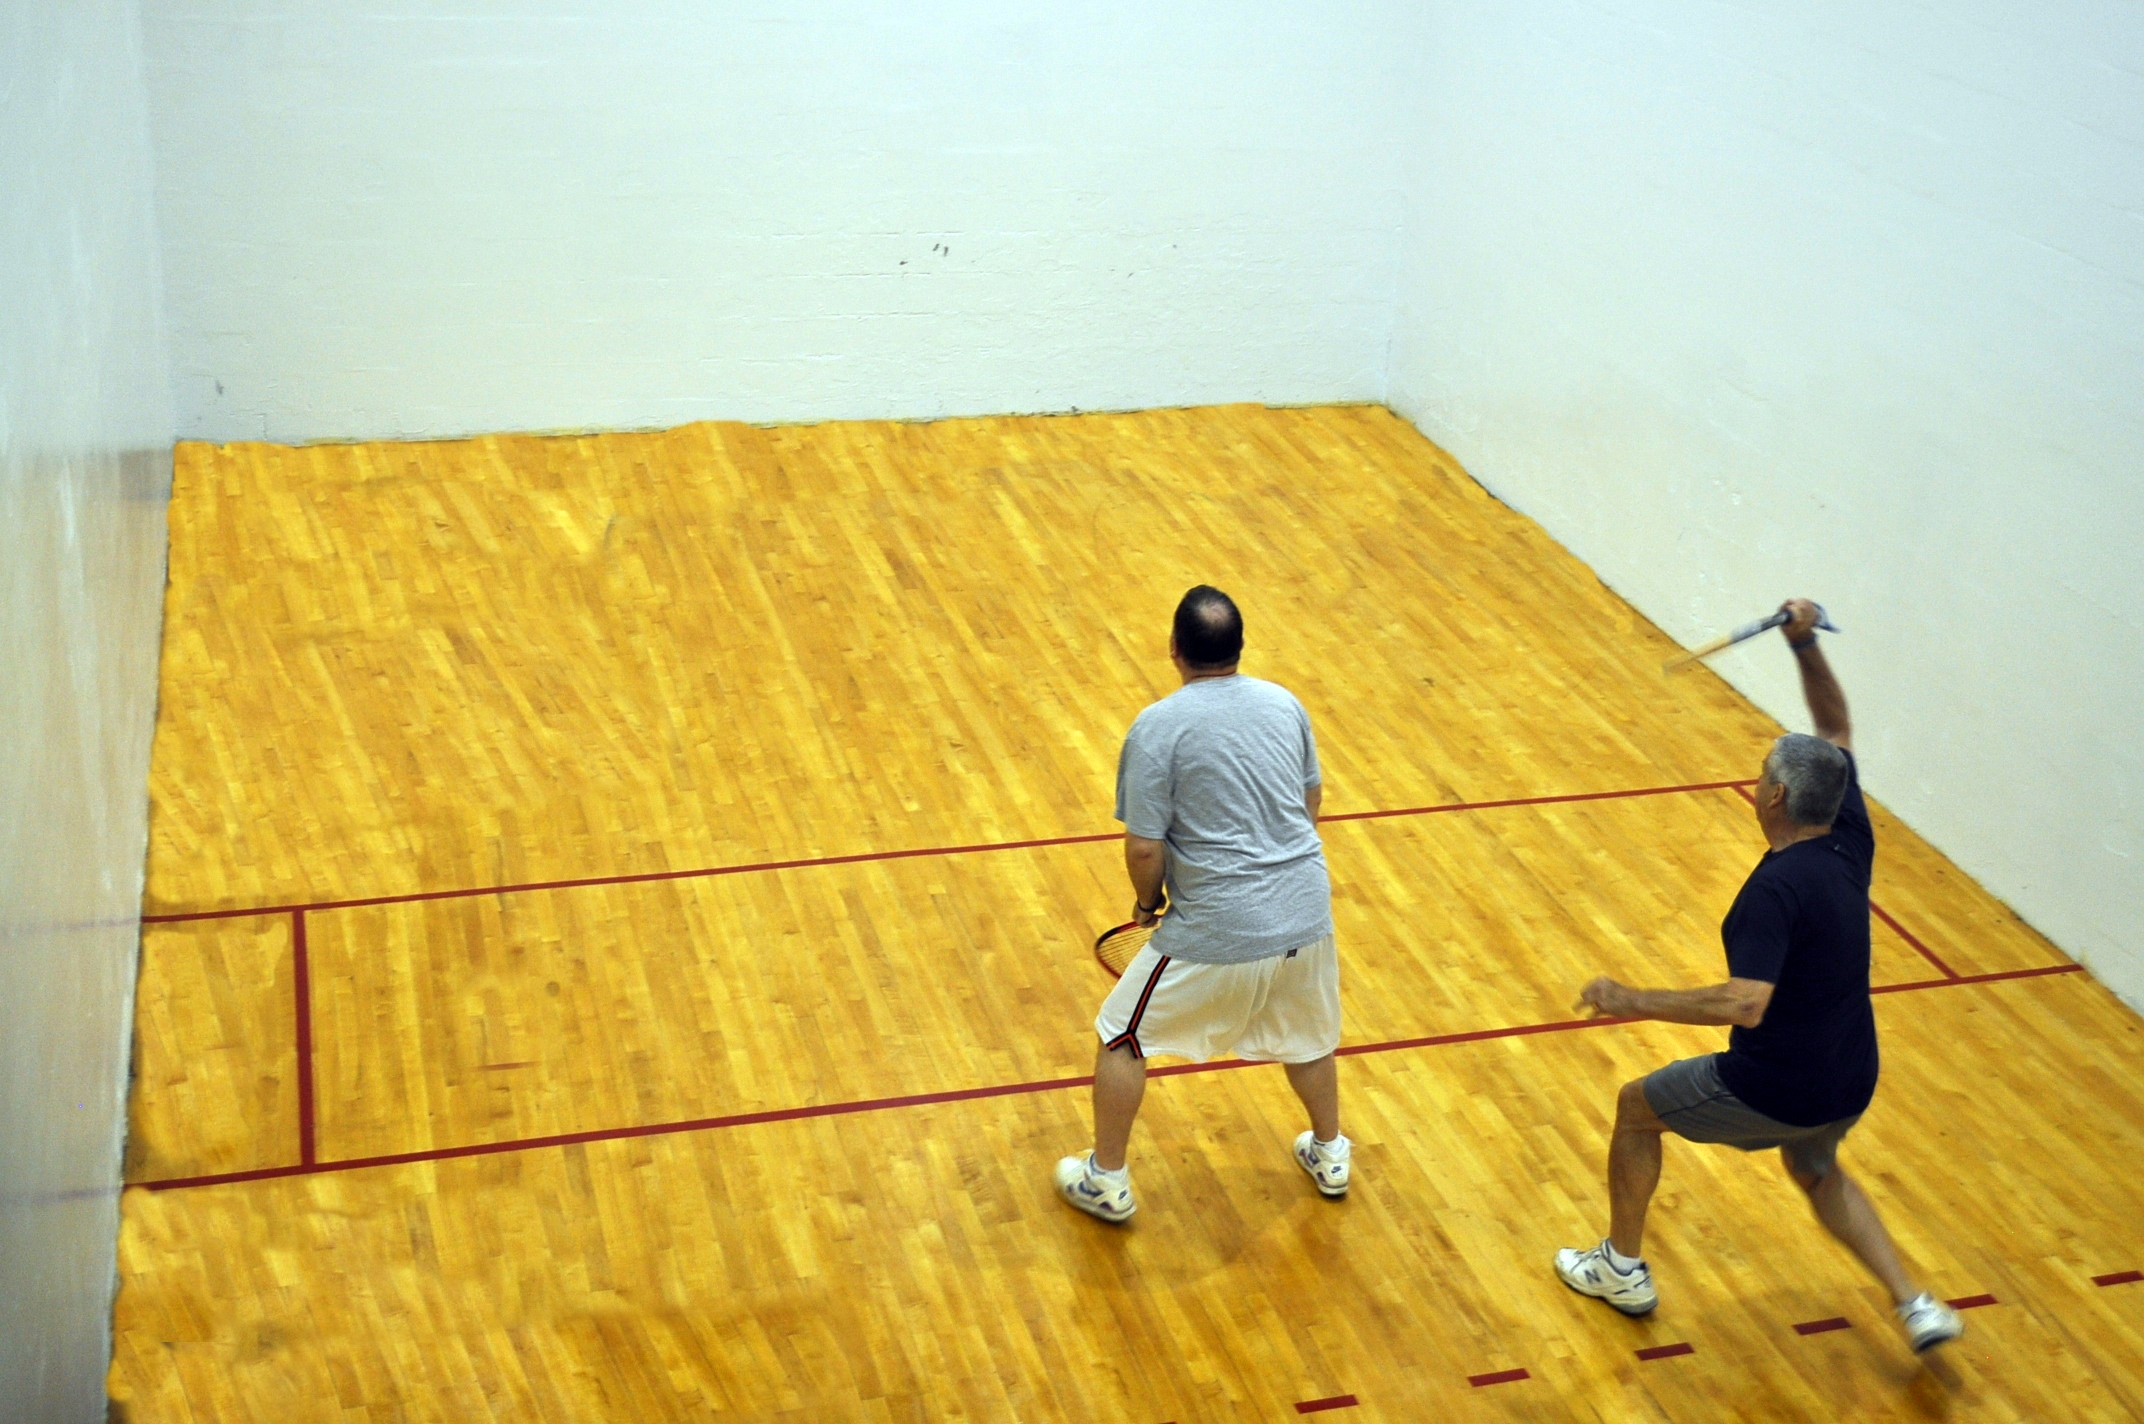 We also offer racquetball courts for fun and exercise!